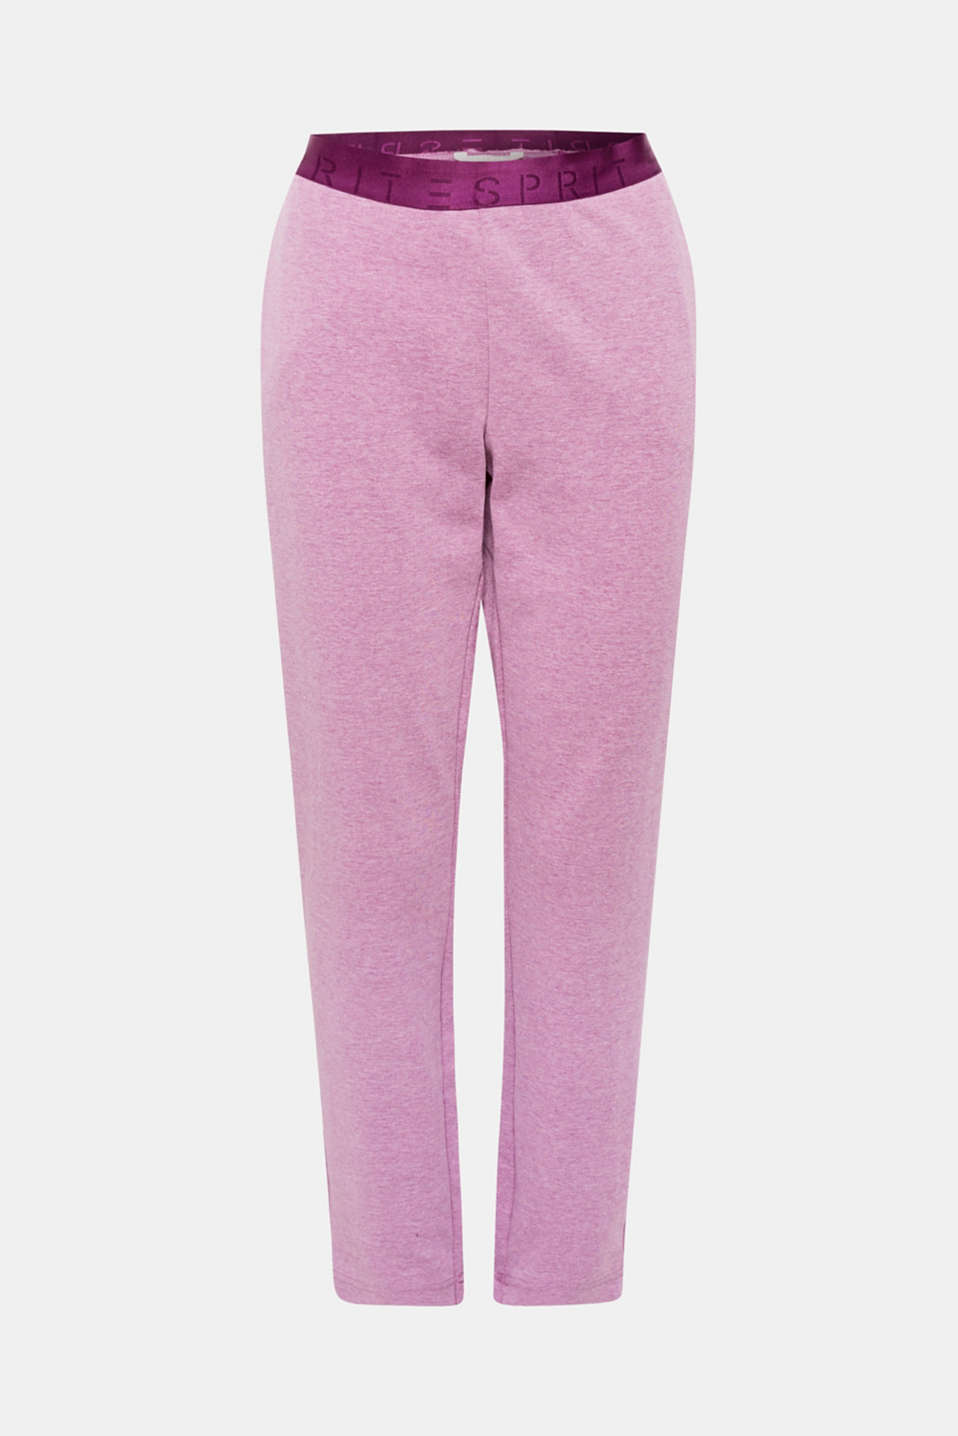 The attached, softly shimmering logo waistband and fashionable melange finish make these jersey tracksuit bottoms casual and trendy at the same time!